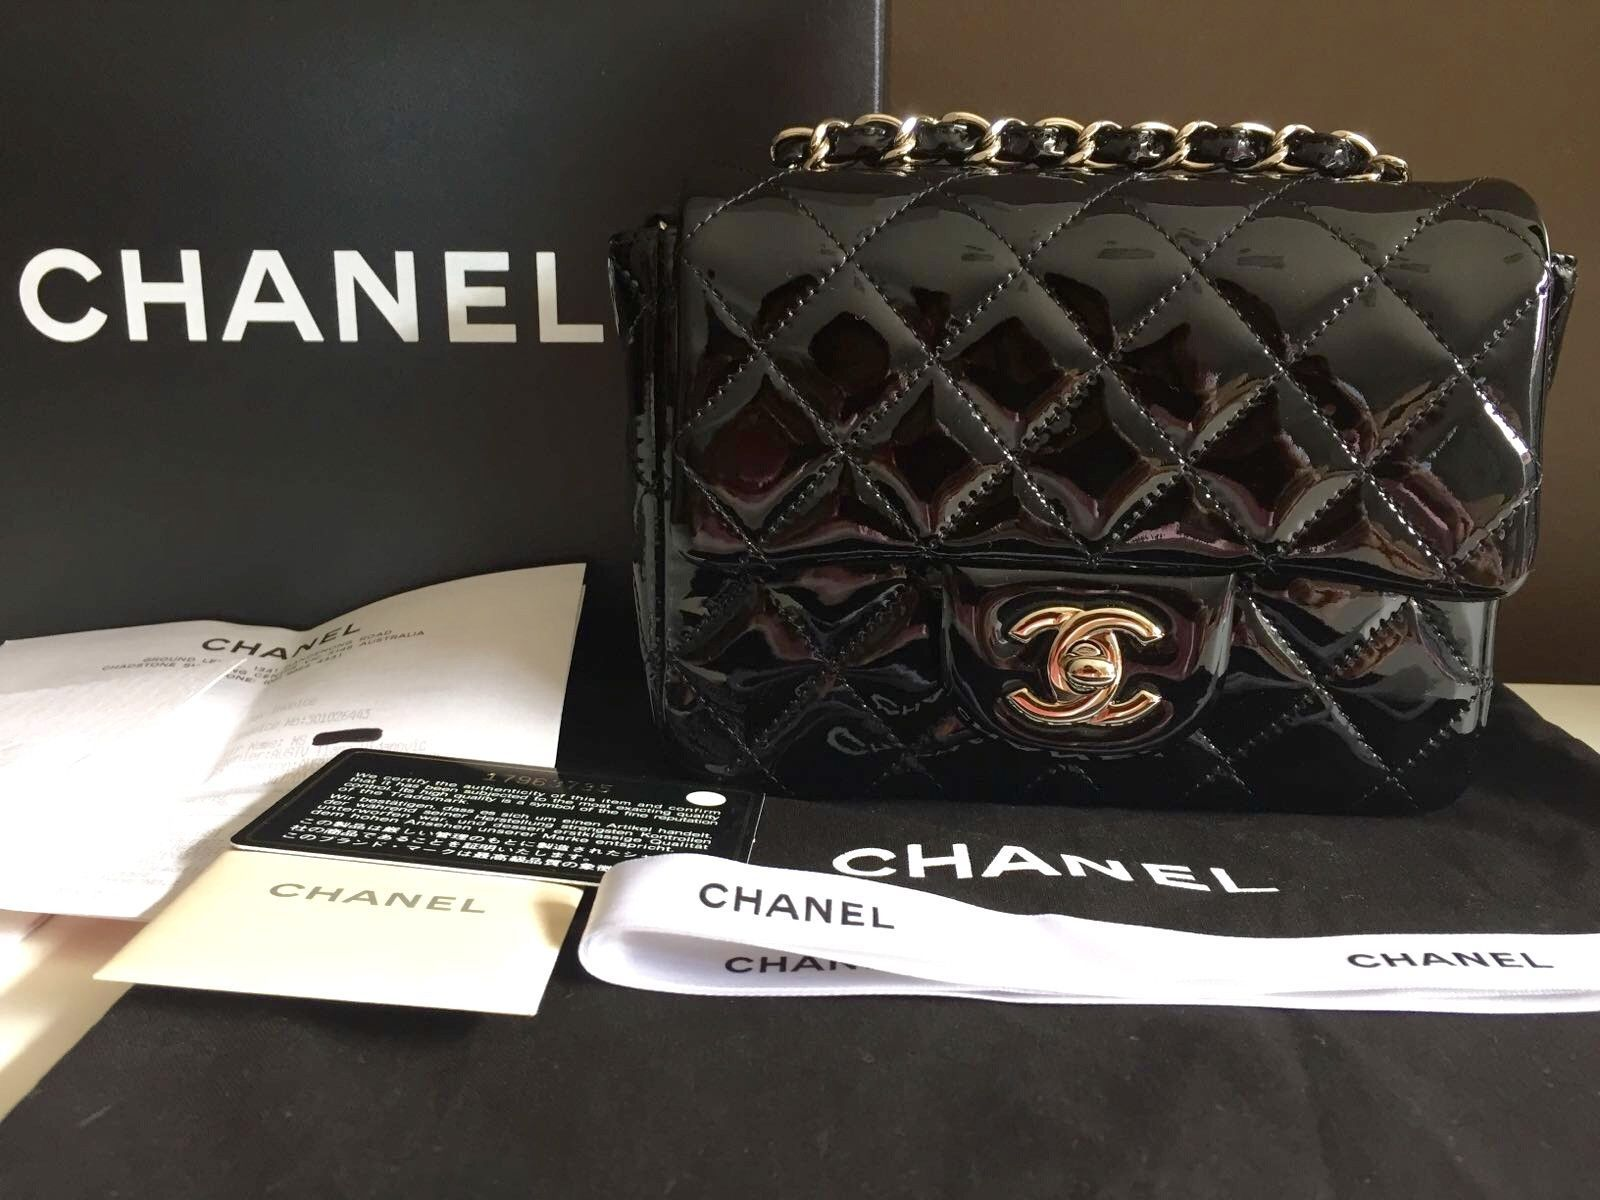 392aaff6eea0ac CHANEL Mini Square Patent Leather Flap Bag | Chanel | Chanel mini ...